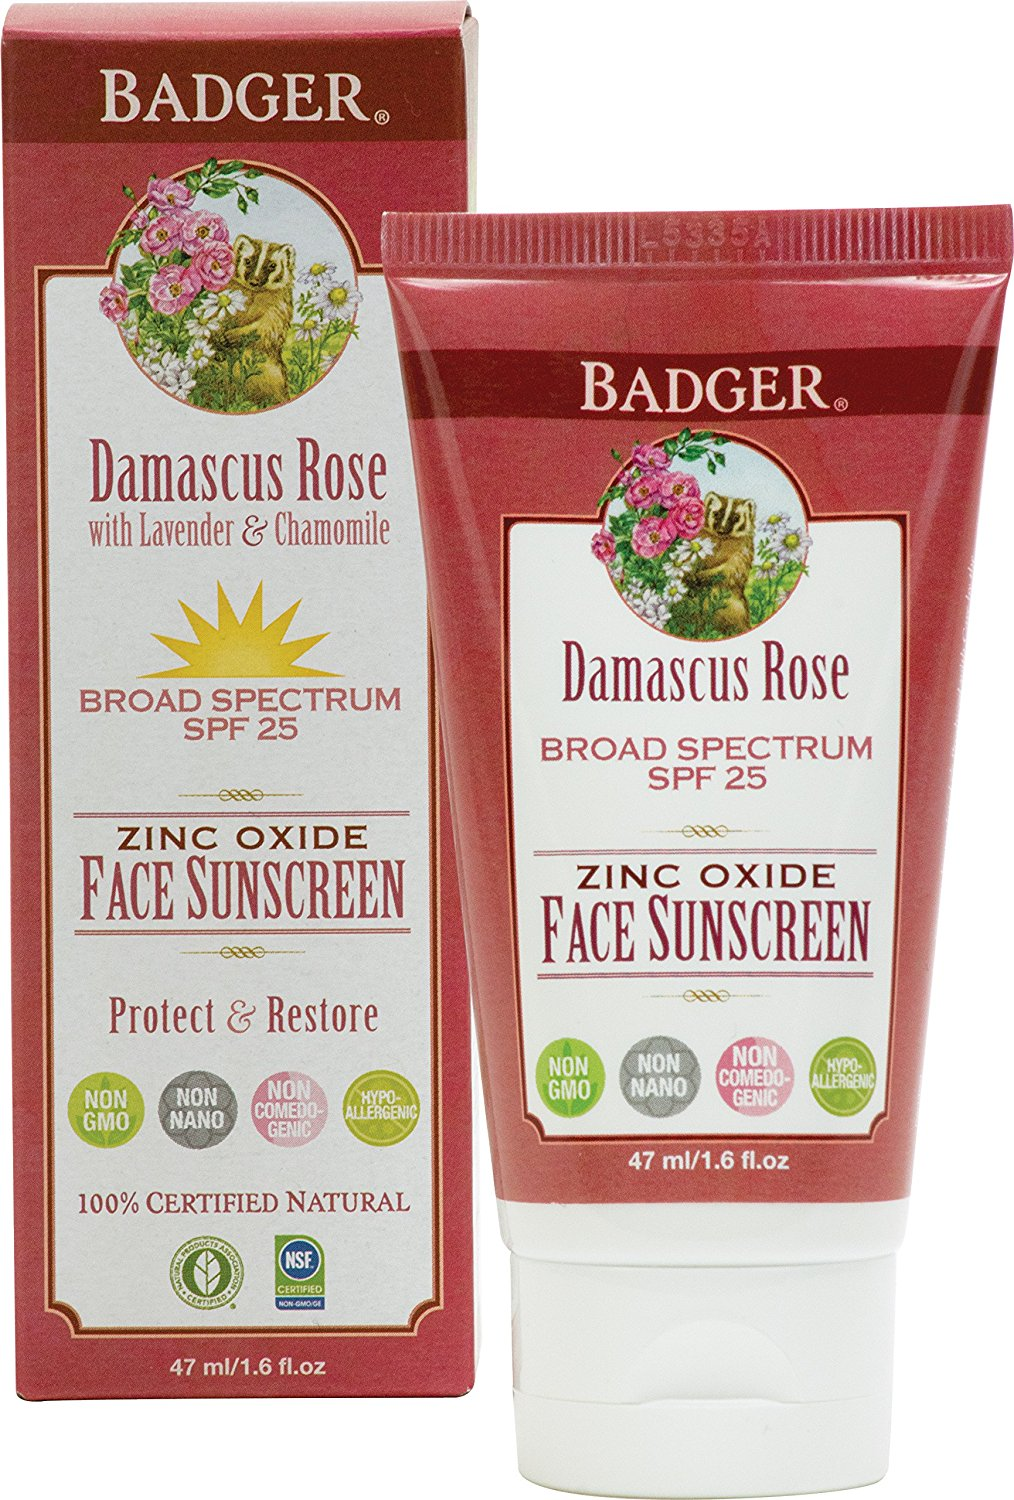 Badger Damascus Rose SPF 25 Face Sunscreen Lotion with Lavender and Chamomile - 1.6 oz Tube